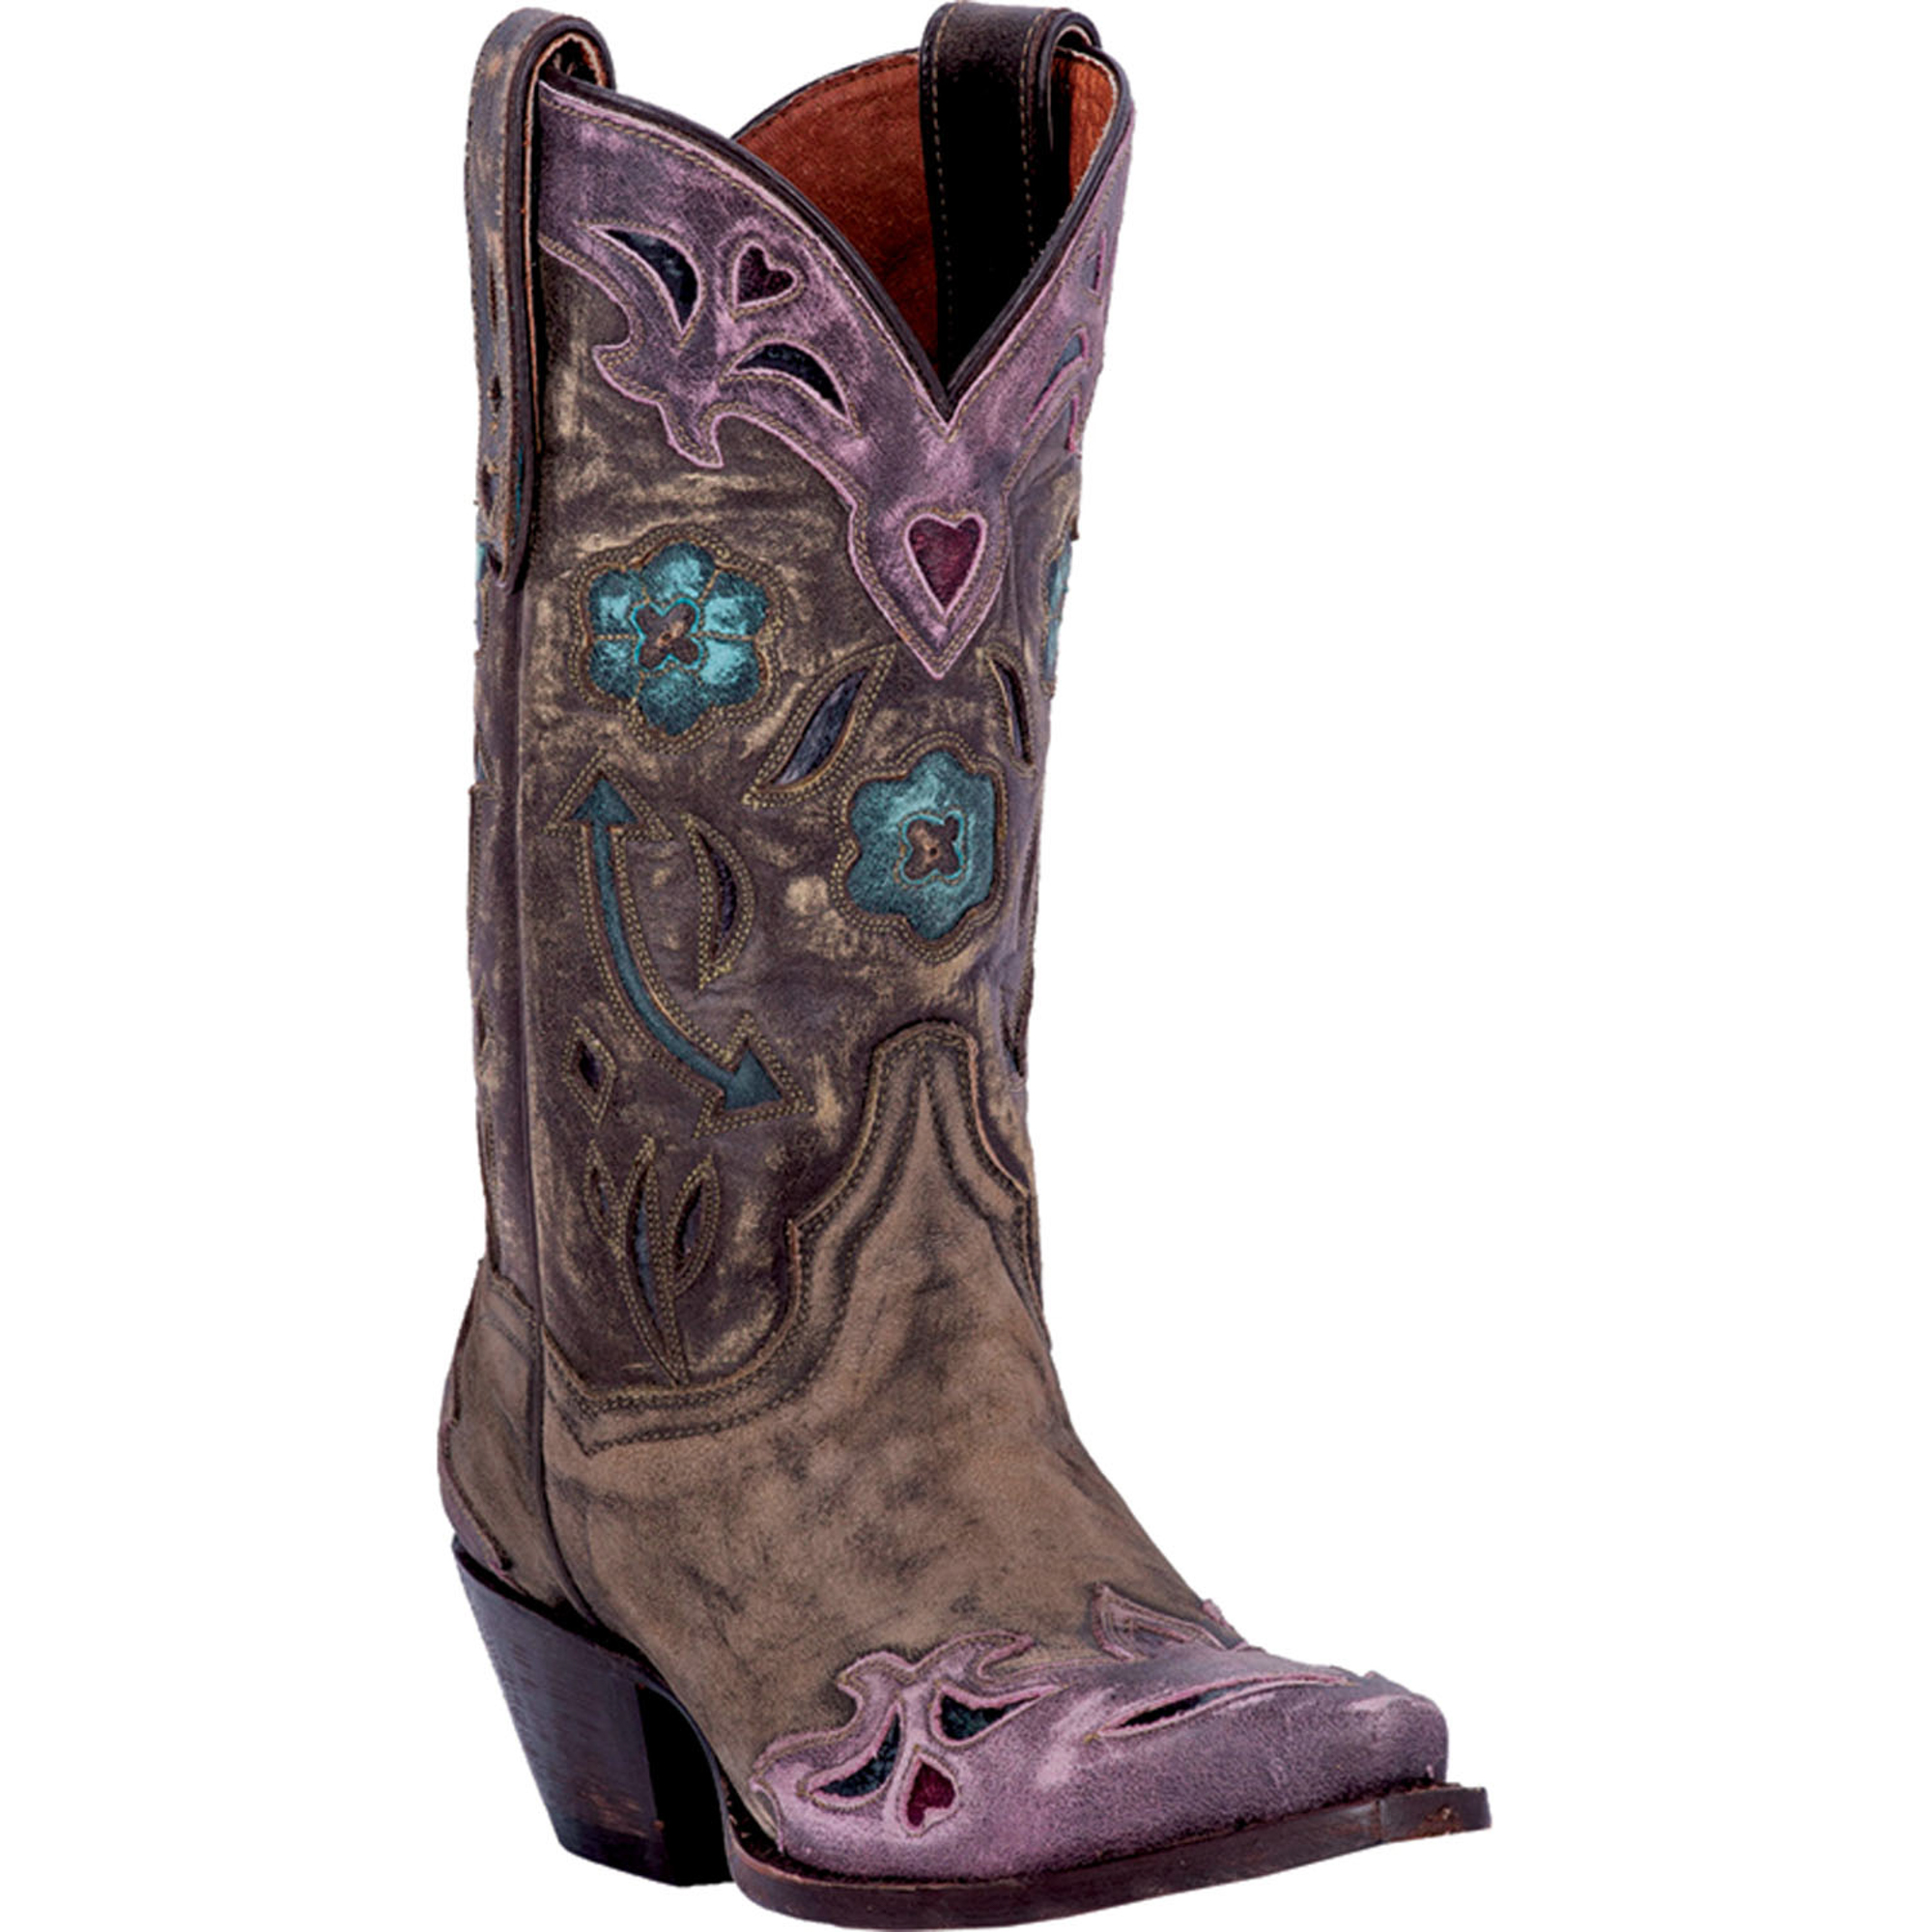 Brilliant A Group Of Dan Post Womens Leather Cowboy Boots The Selection Features A Pair Of Cream Leather Cowboy Boots With White And Gray Embroidery Along The Surface In A Size 75 Also Included Are A Pair Of Black Leather Cowboy Boots With